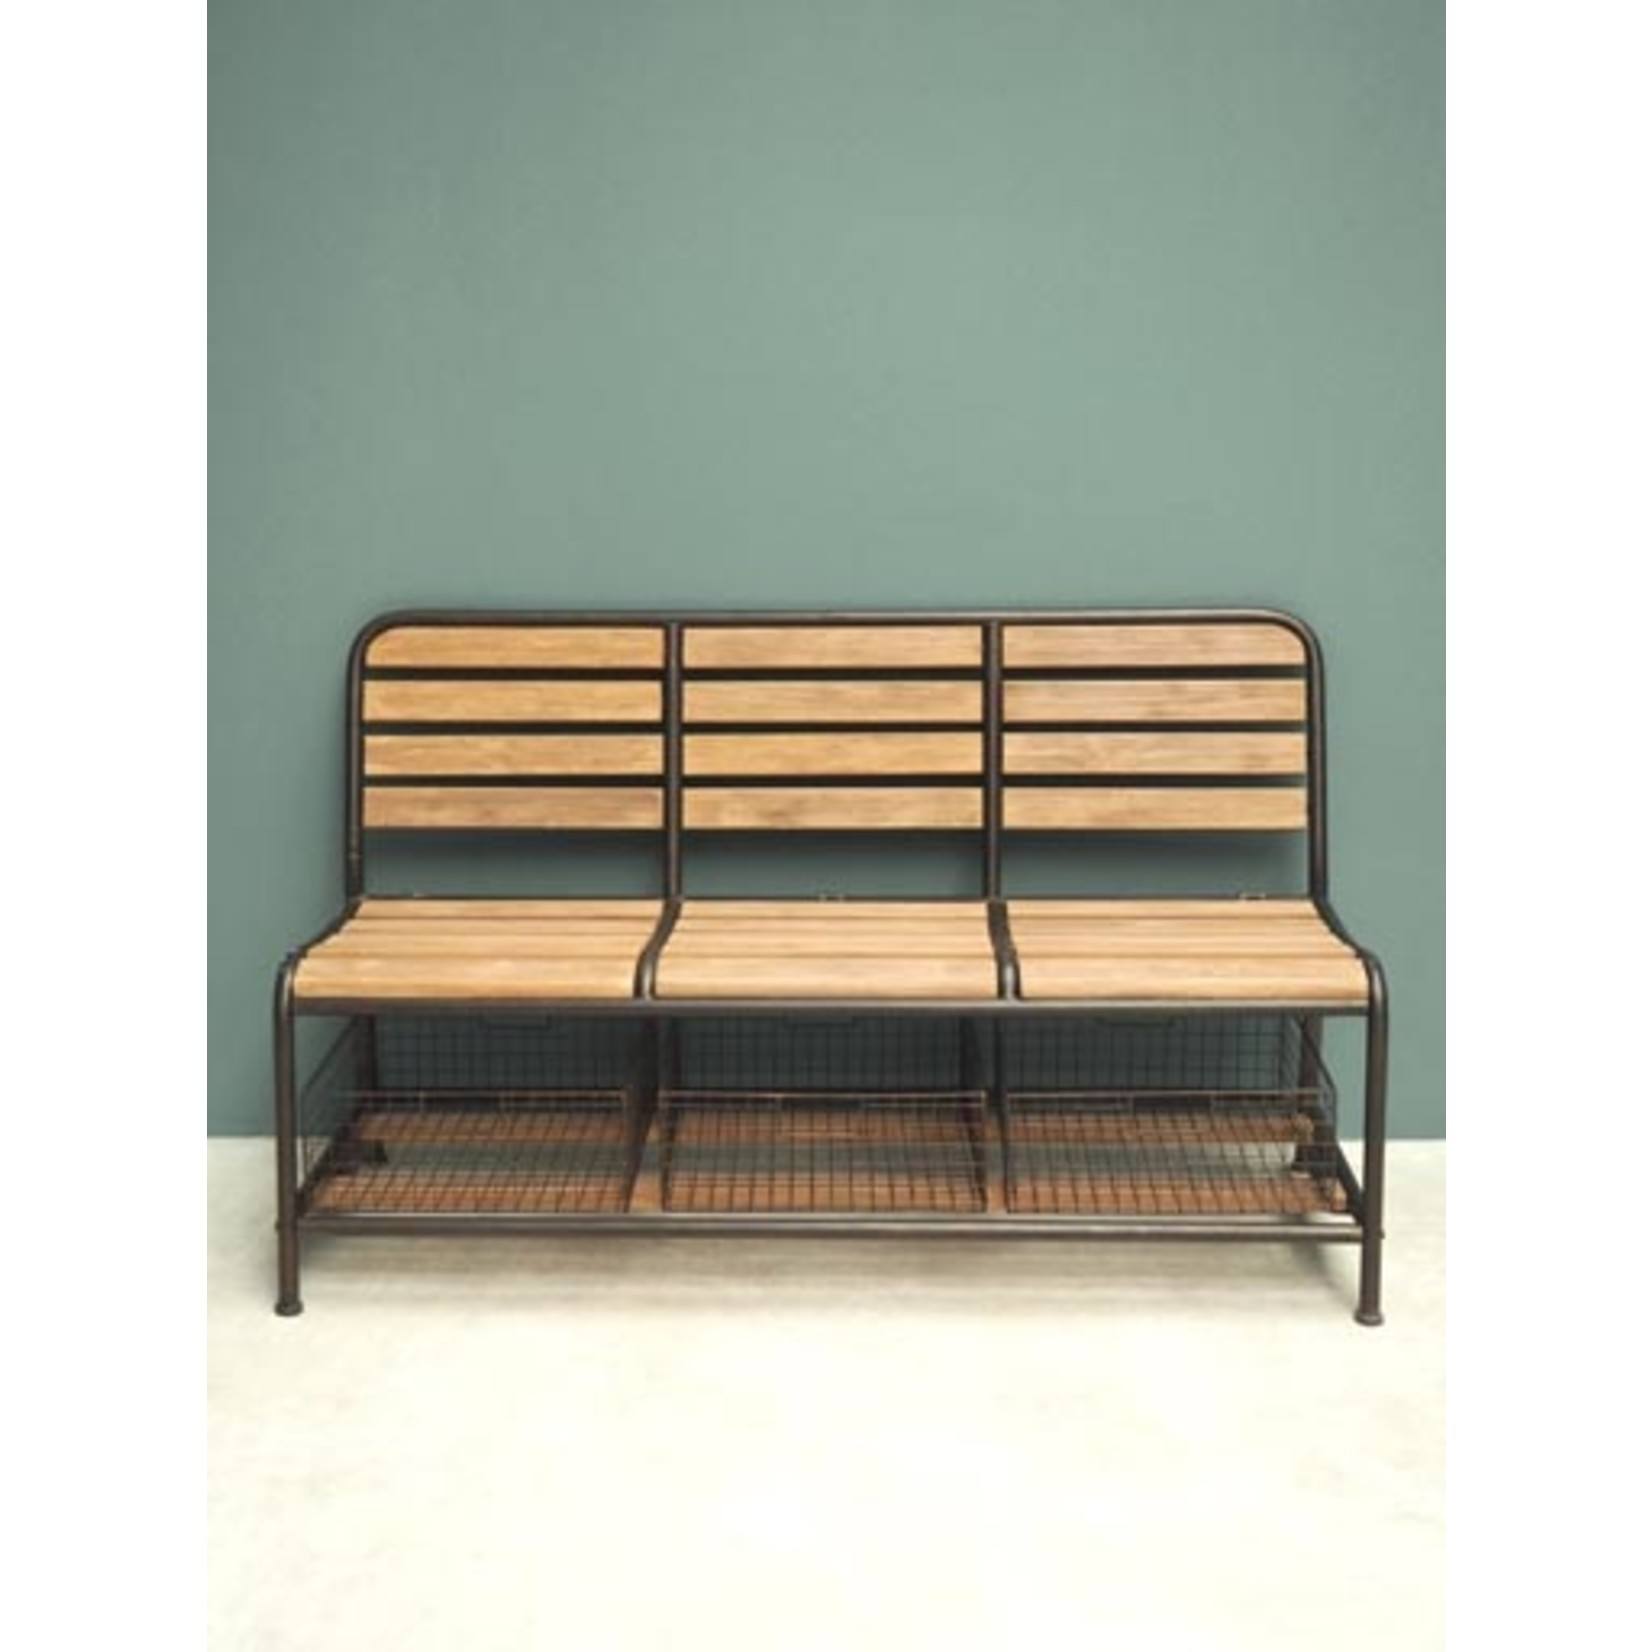 CHEHOMA WOODEN BENCH WITH STORAGE BASKETS